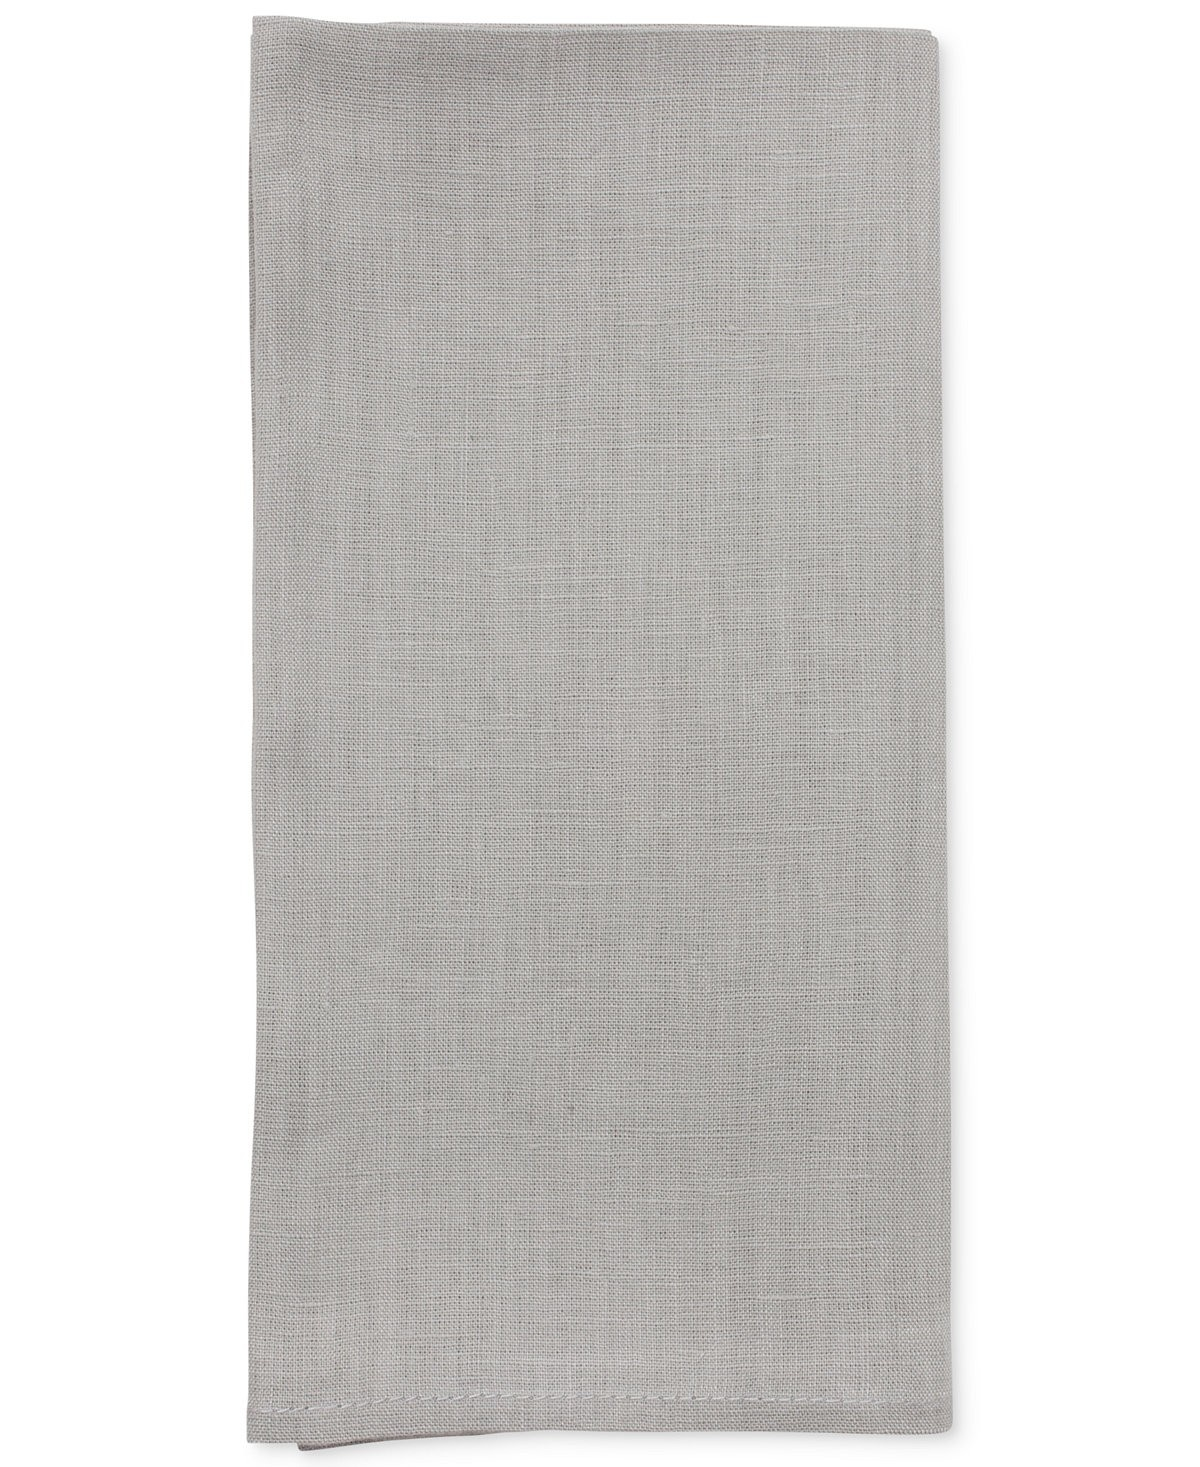 Chilewich Linen Napkin Pale Grey